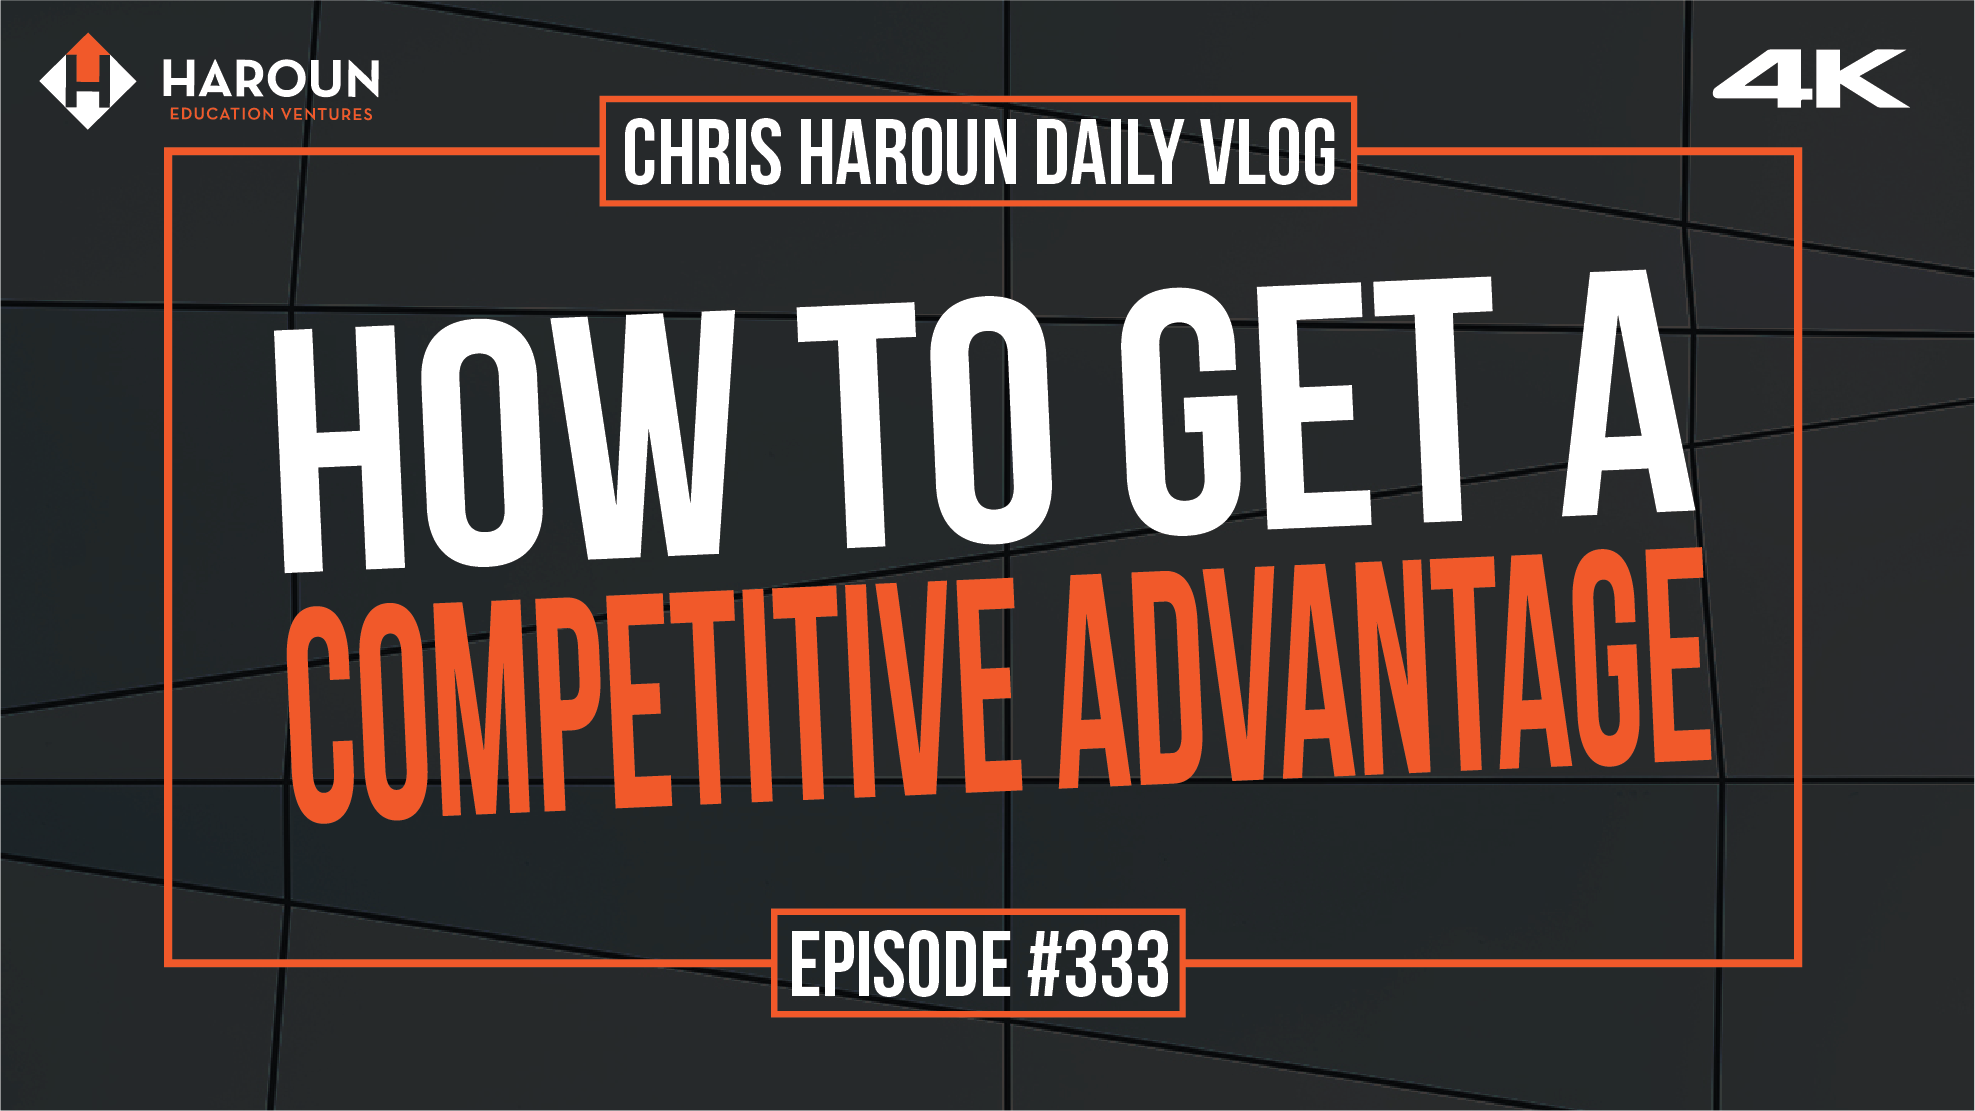 VLOG_333_6_29_2019_How to Get a Competitive Advantage.png